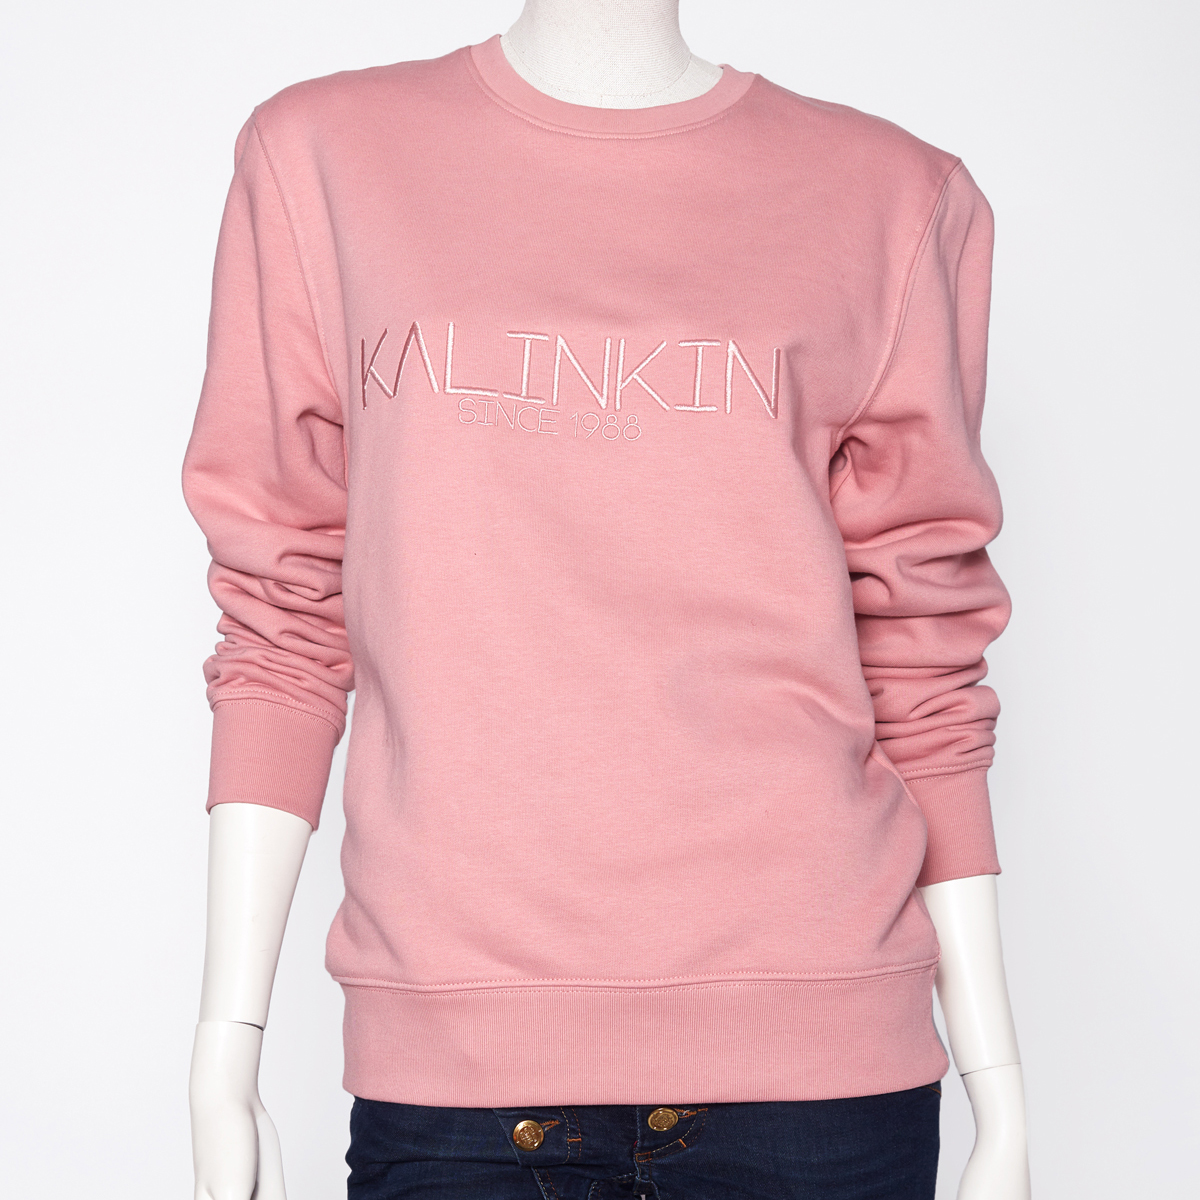 SINCE 1988 SWEATSHIRT, PINK